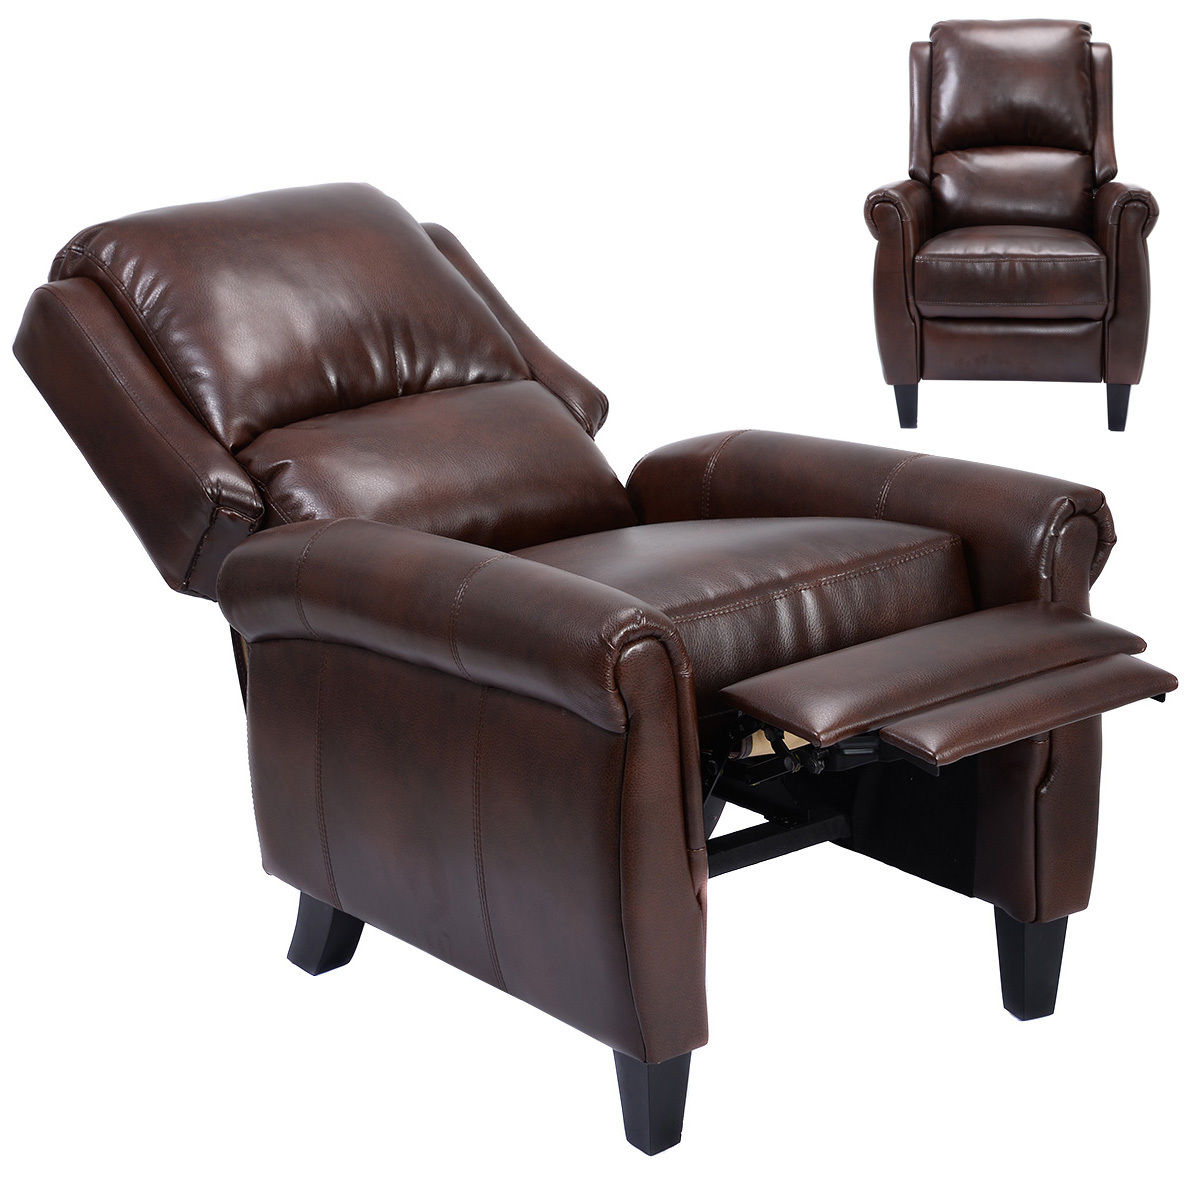 reclining accent chair burgundy covers brown recliner with leg rest arm chairs recliners sleeper furniture